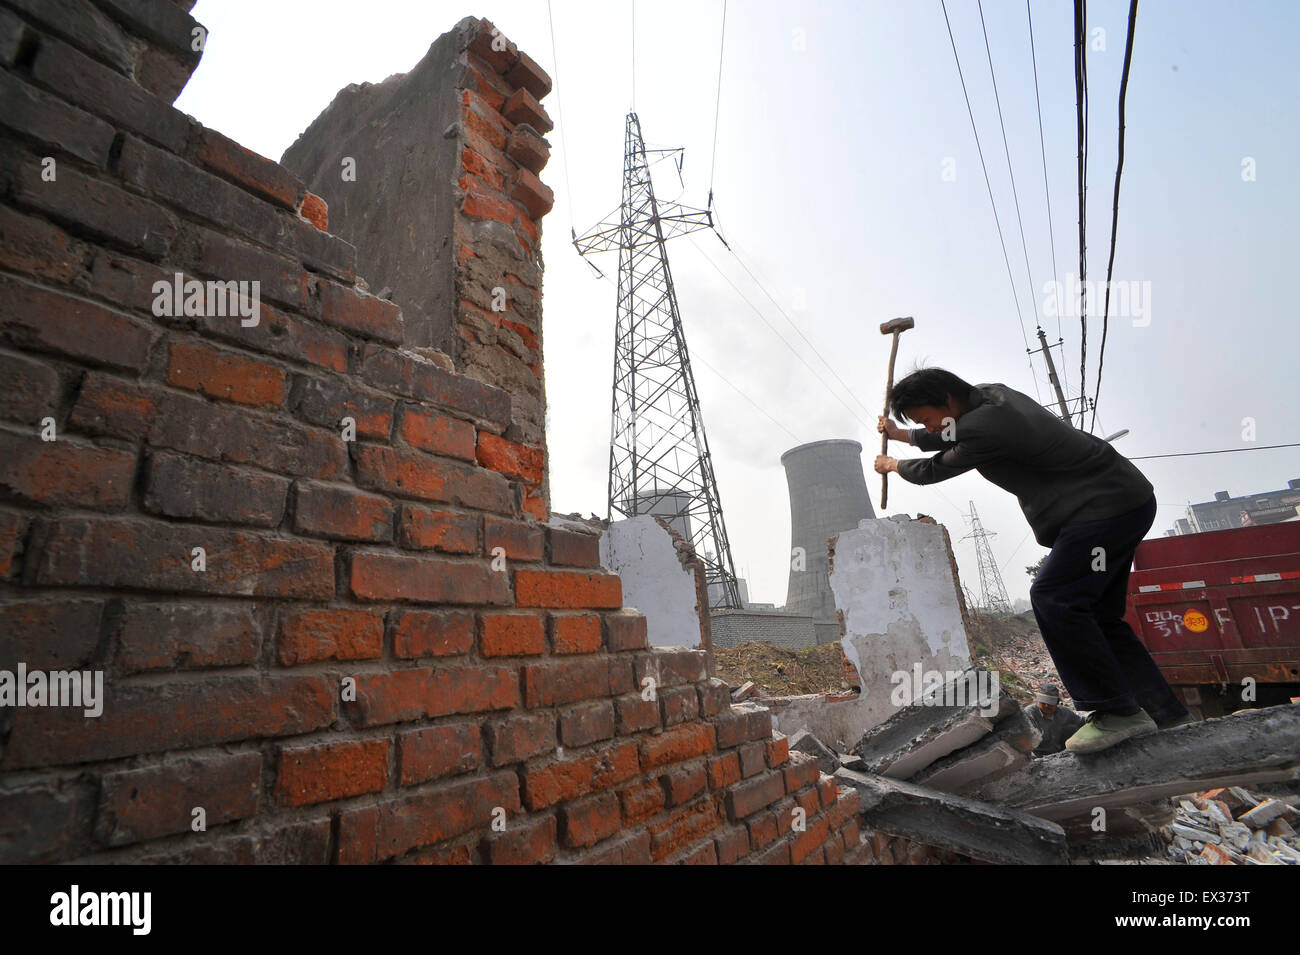 A labourer recycles usable steel bars at a demolition site in Xiangfan, Hubei province April 9, 2010.  VCP - Stock Image